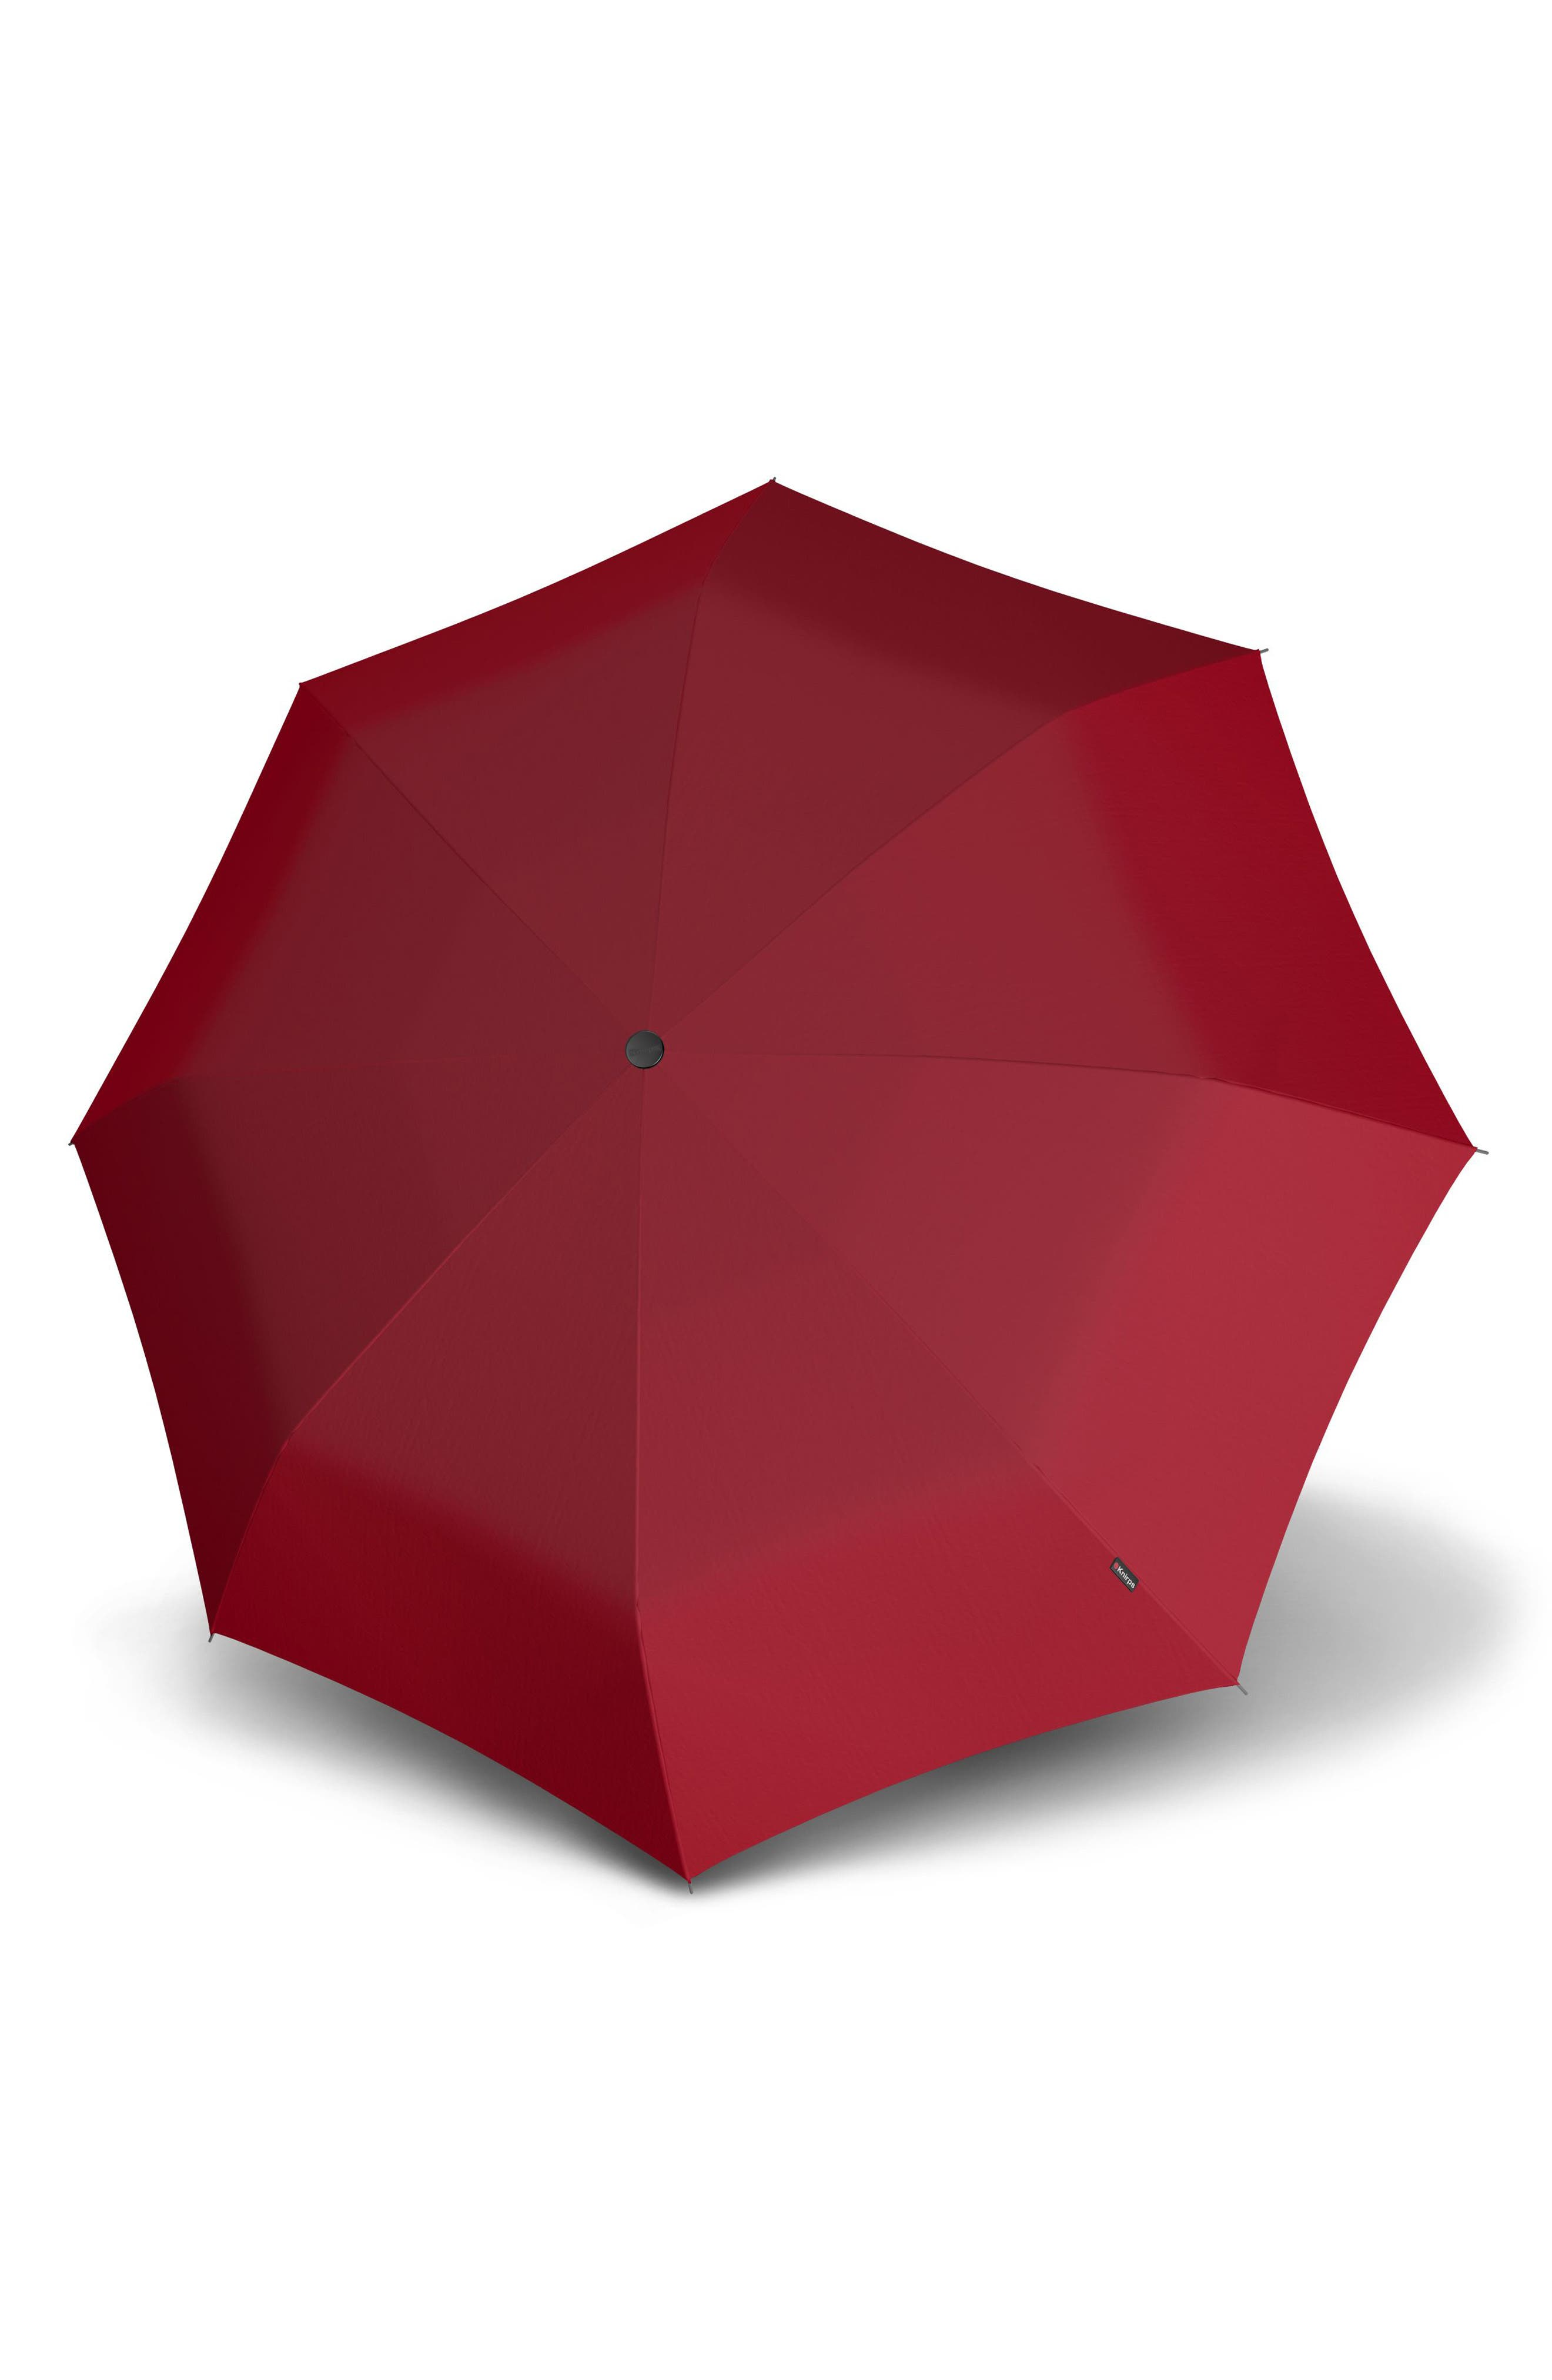 Main Image - Knirps Compact Duomatic Umbrella